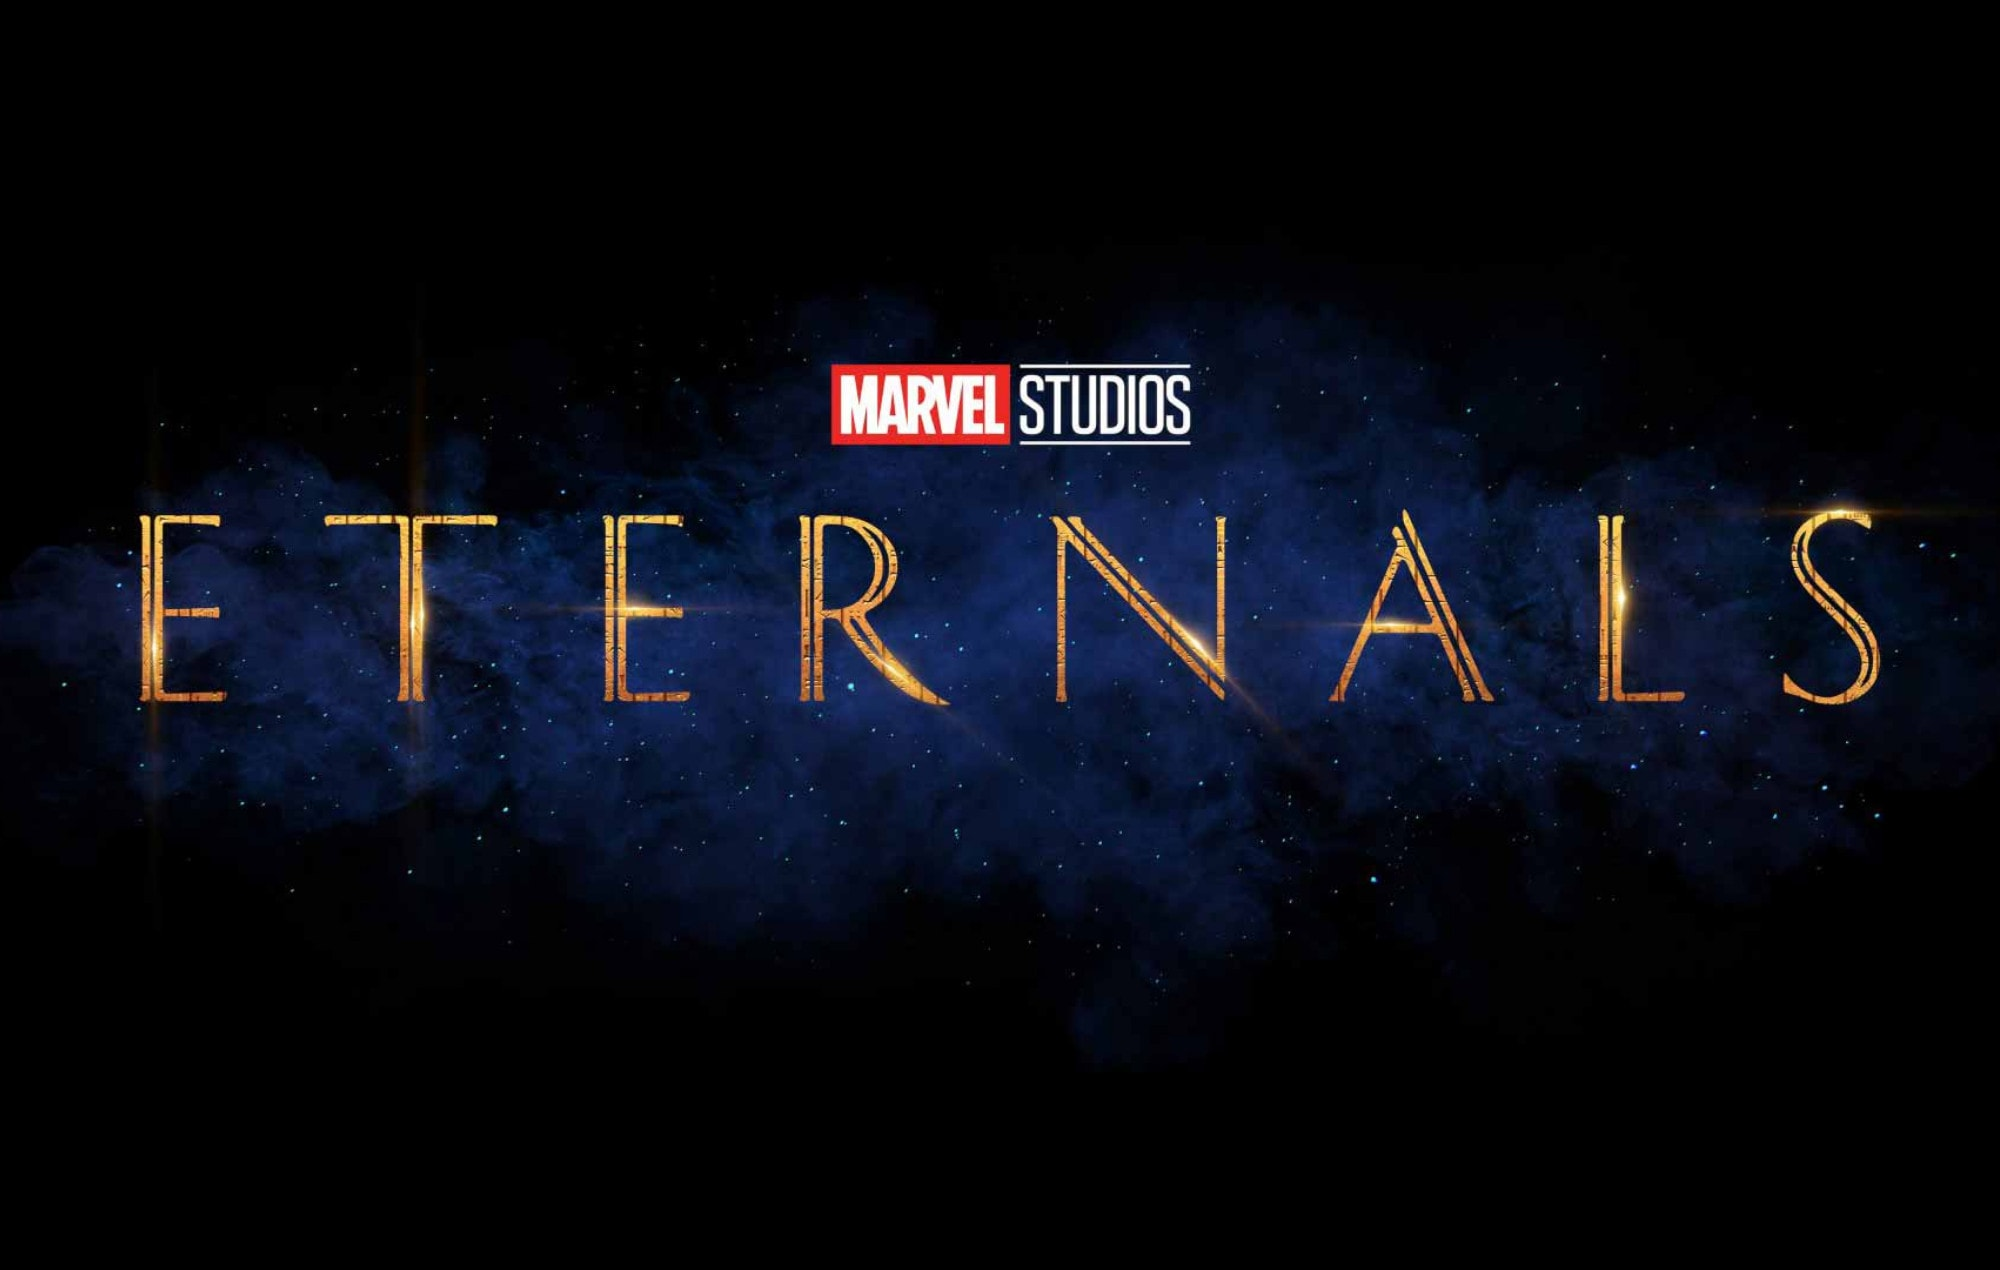 eternals phase 4 release date